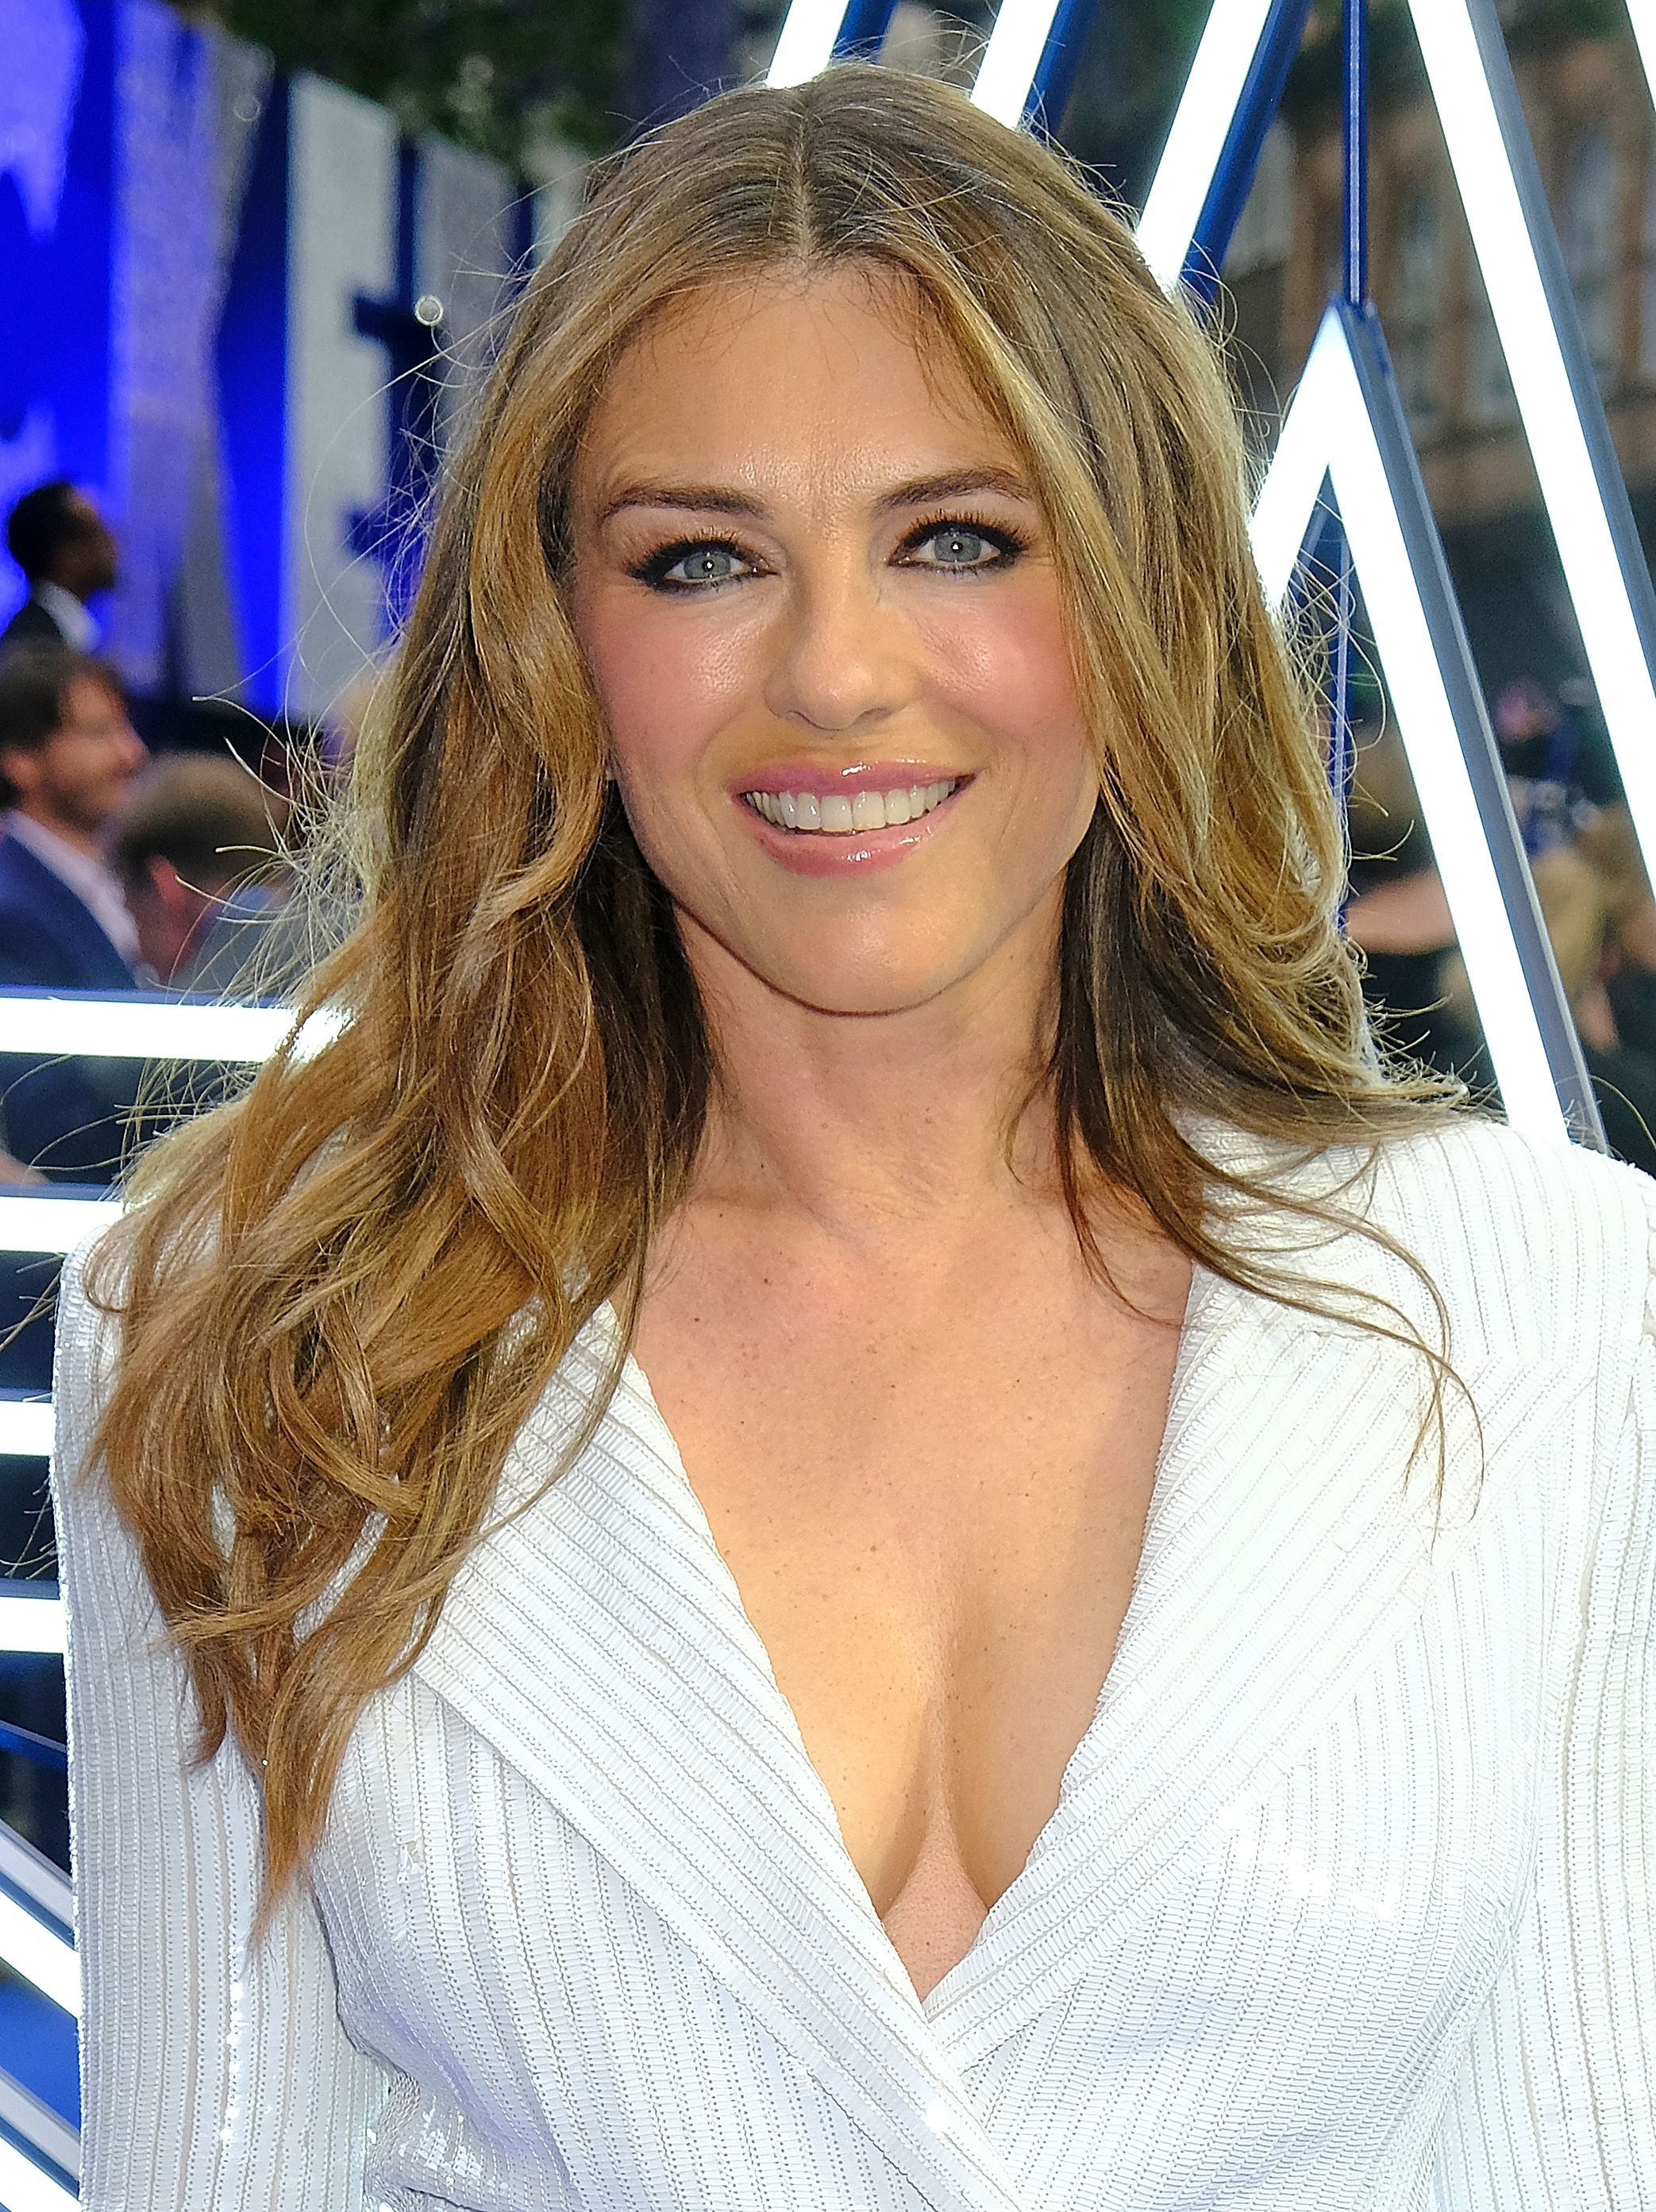 Elizabeth Hurley Just Posted A New Bikini Photo Showing Off Her Crazy Toned Abs On Instagram